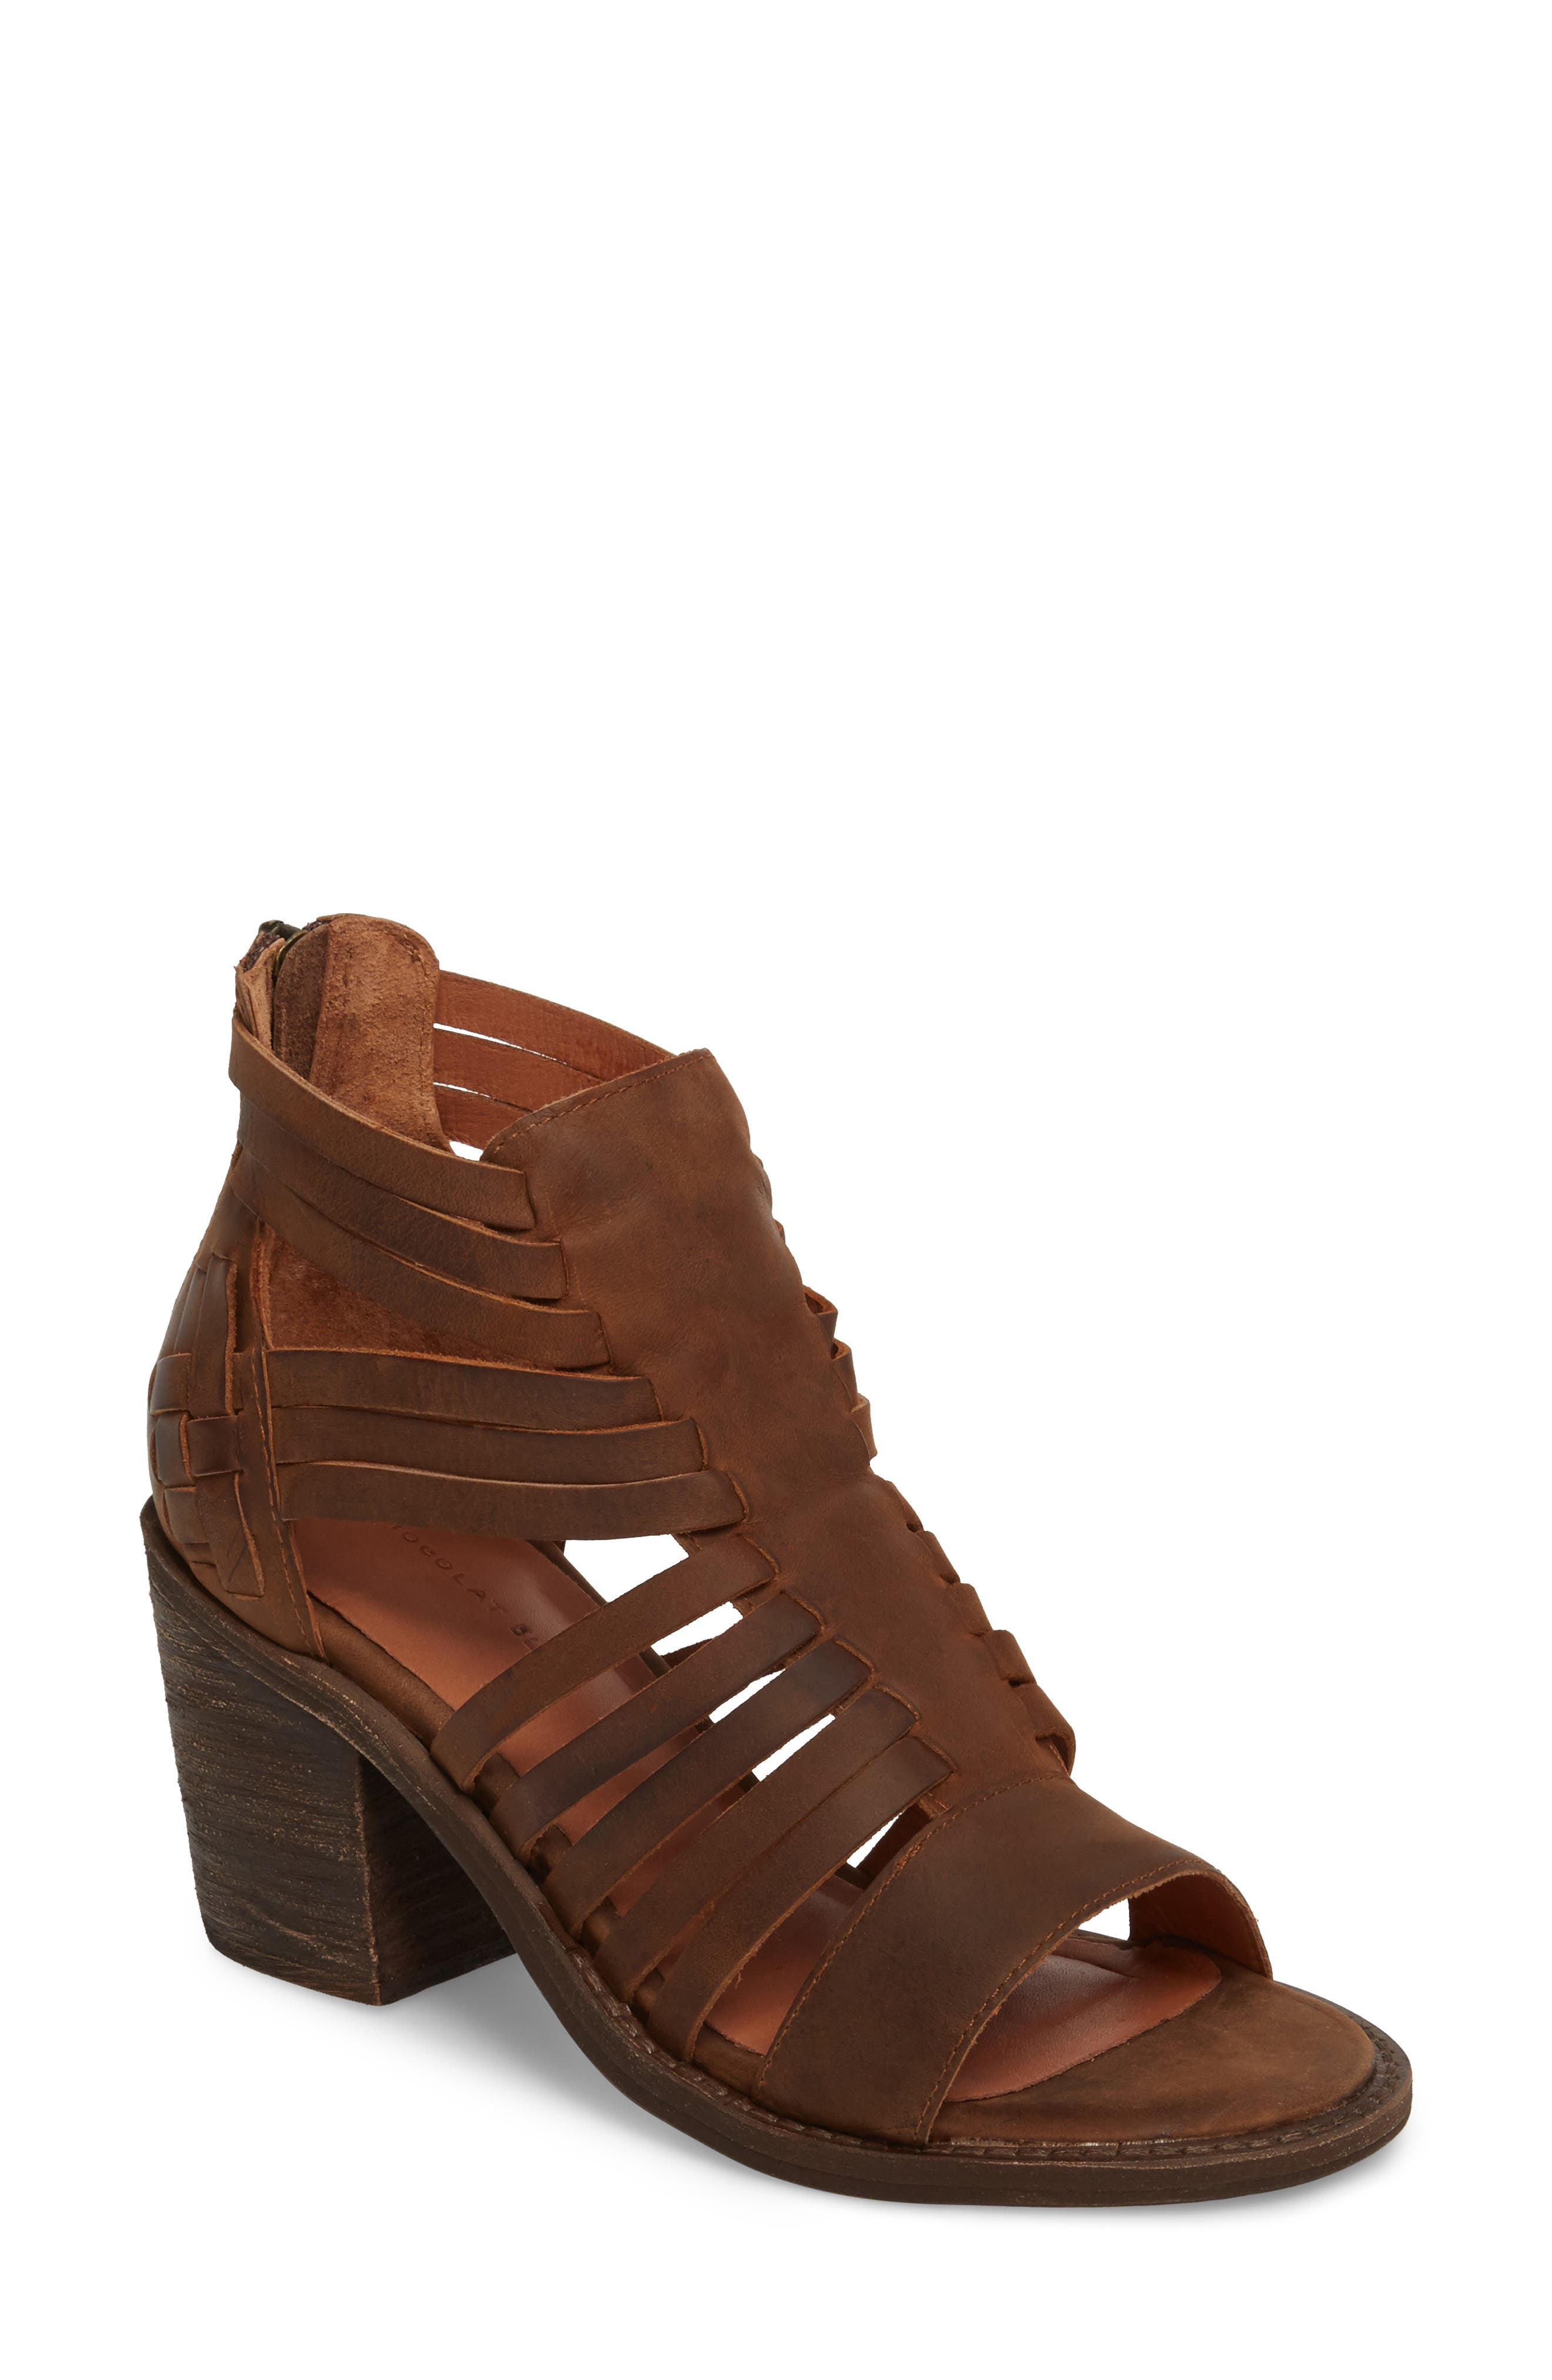 Felice Sandal,                         Main,                         color, Brown Leather